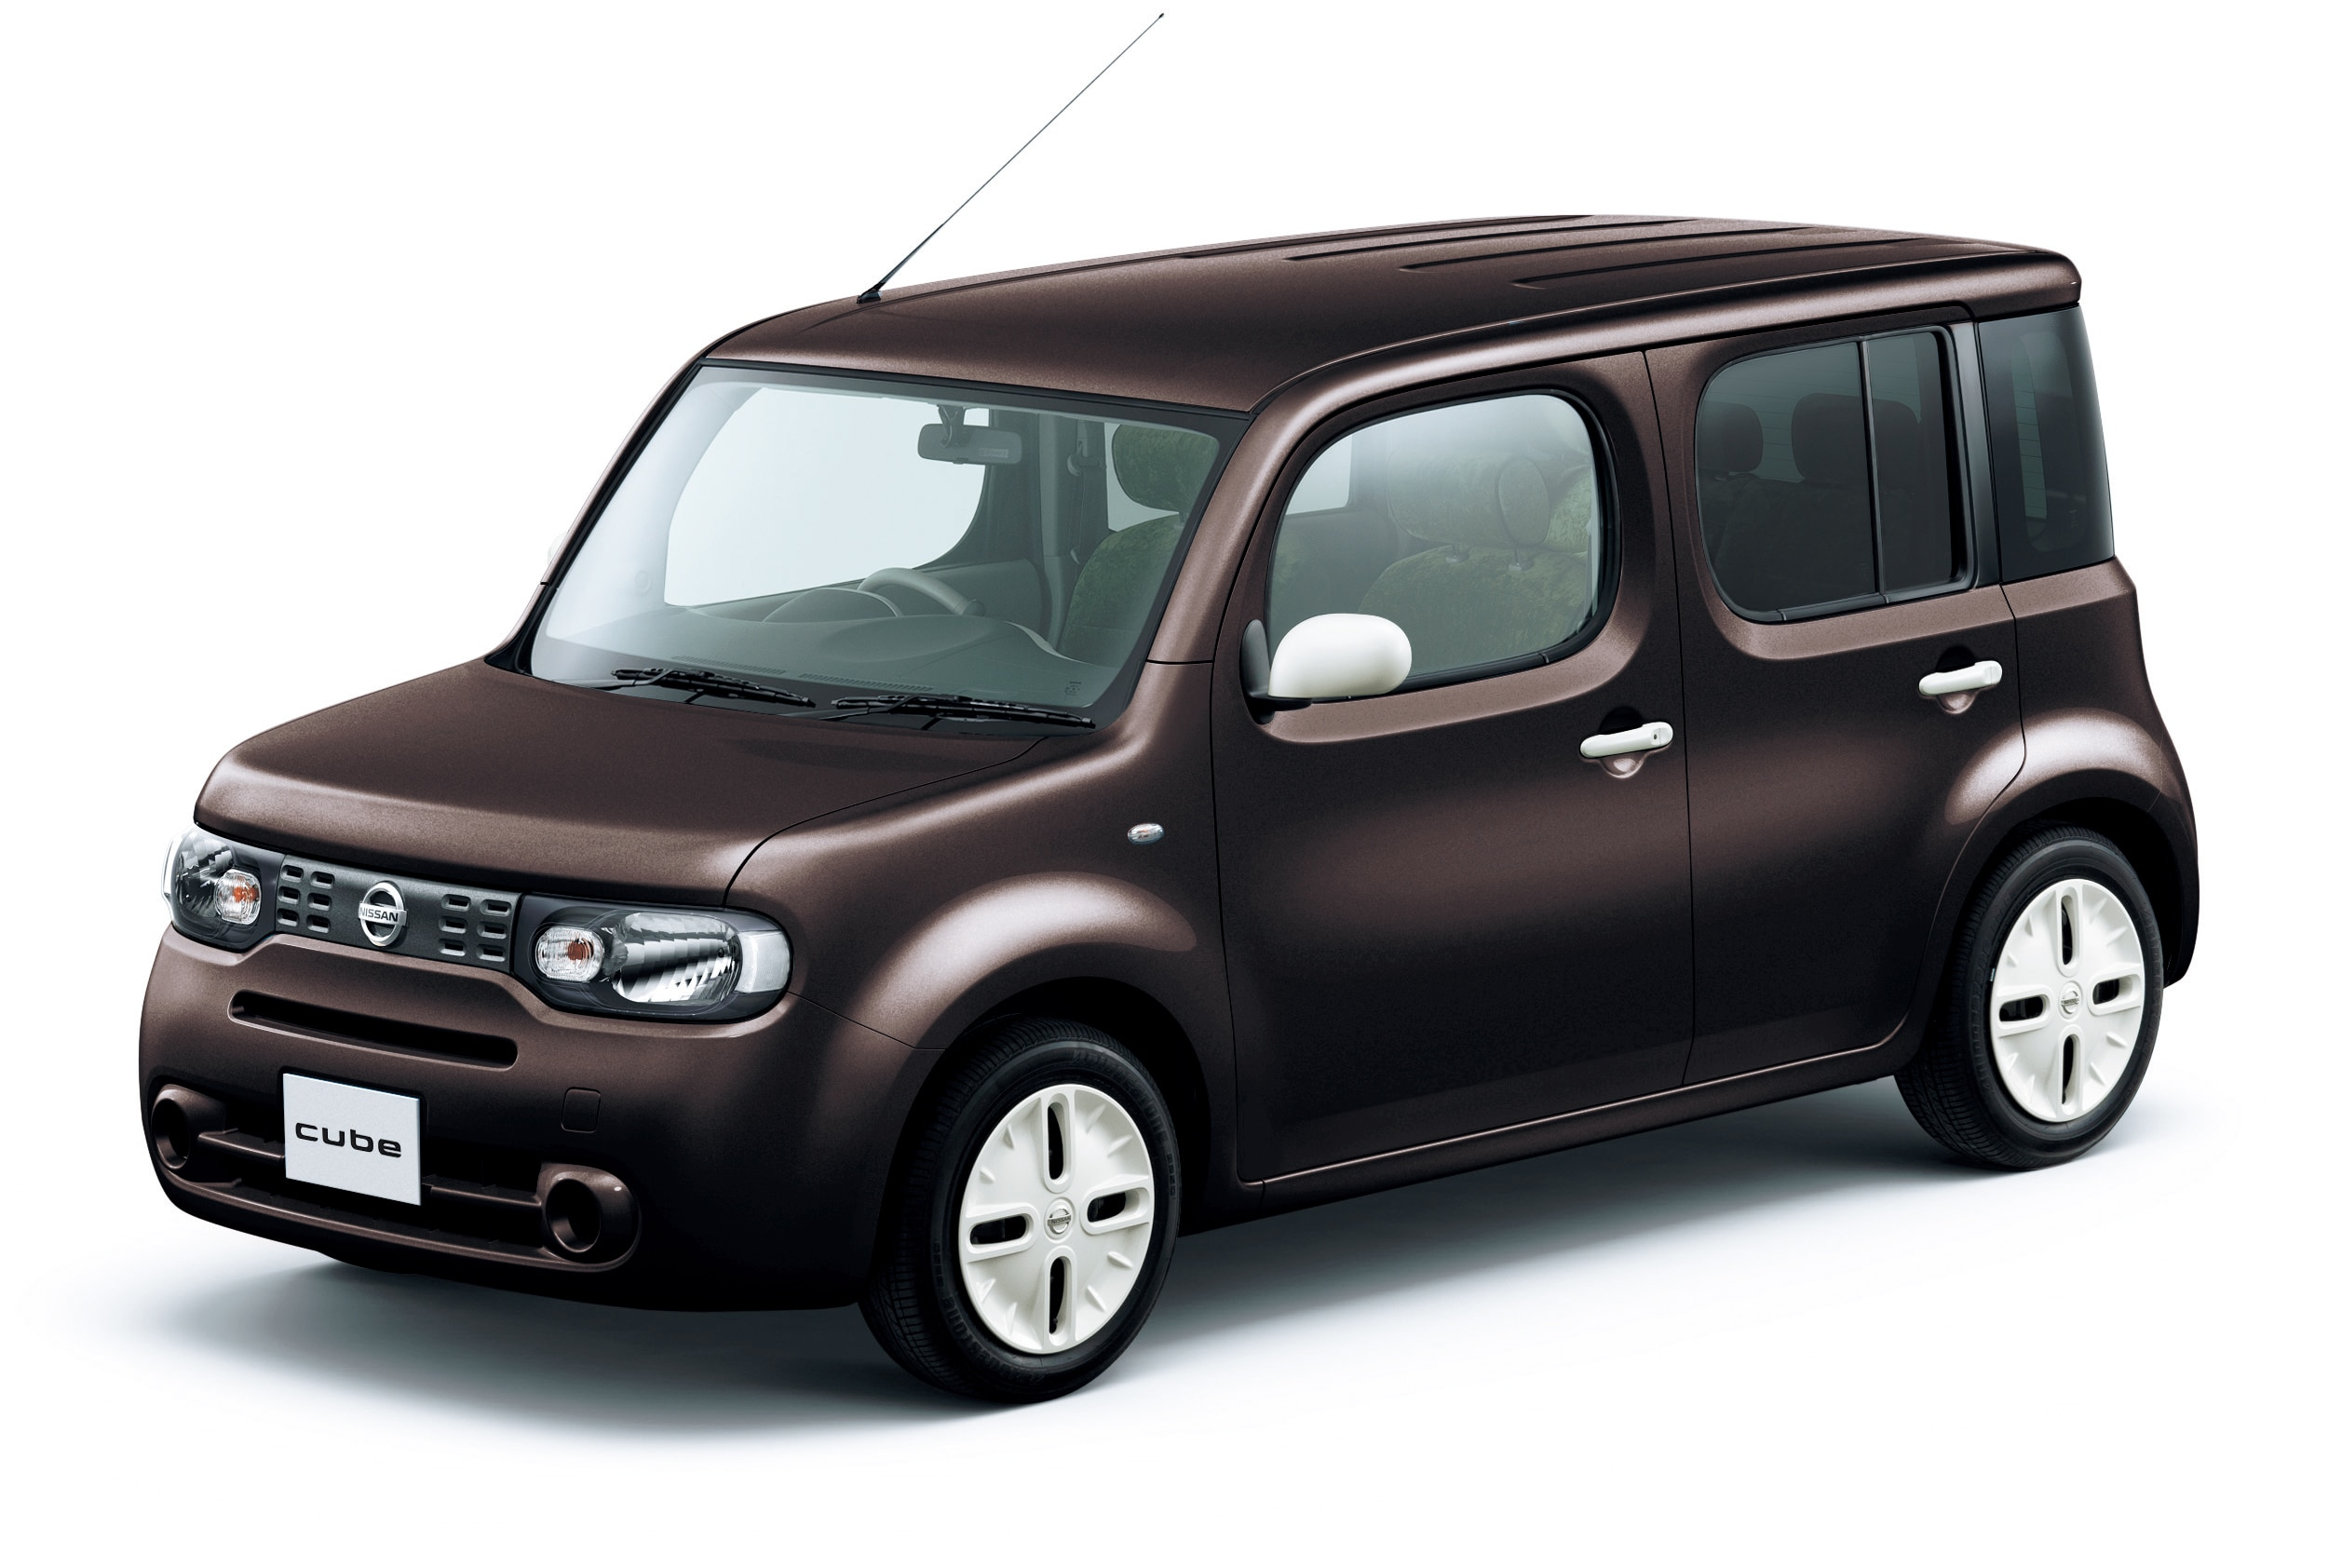 nissan cube 15x green komorebi selection complete with velour seats. Black Bedroom Furniture Sets. Home Design Ideas